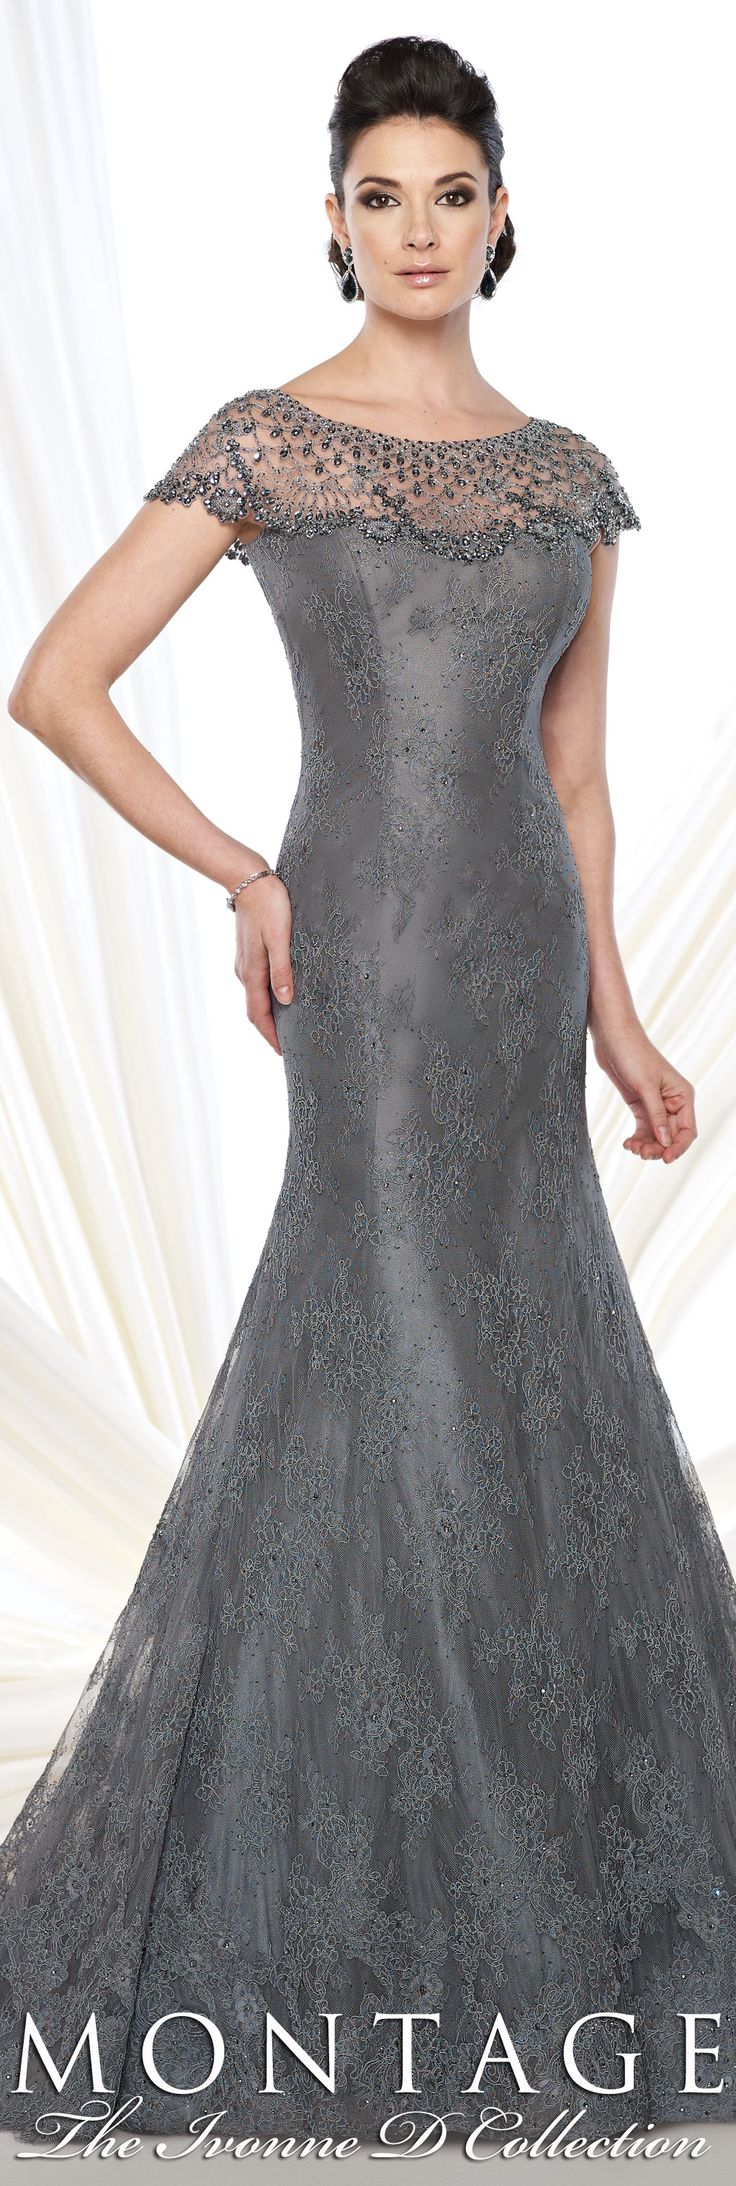 Montage The Ivonne D Collection  Fall 2015  - Style No. 215D10  #eveninggowns